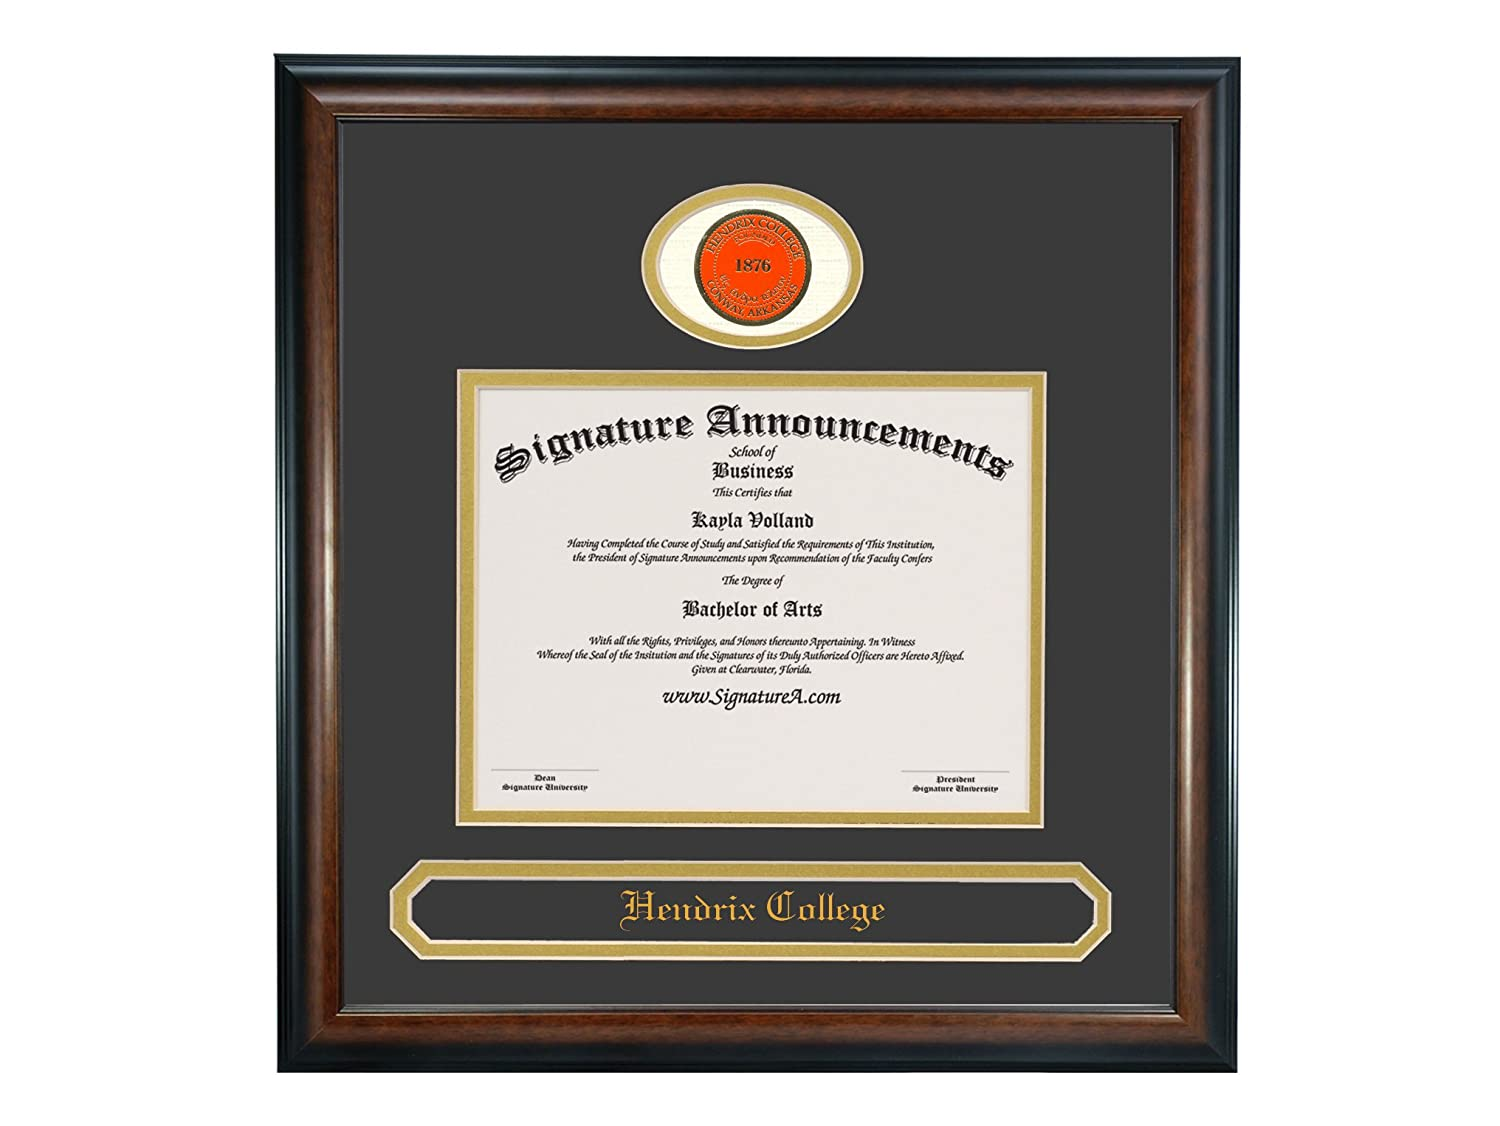 Signature Announcements Hendrix-College Doctorate Sculpted Foil Seal /& Name Graduation Diploma Frame 20 x 20 Matte Mahogany